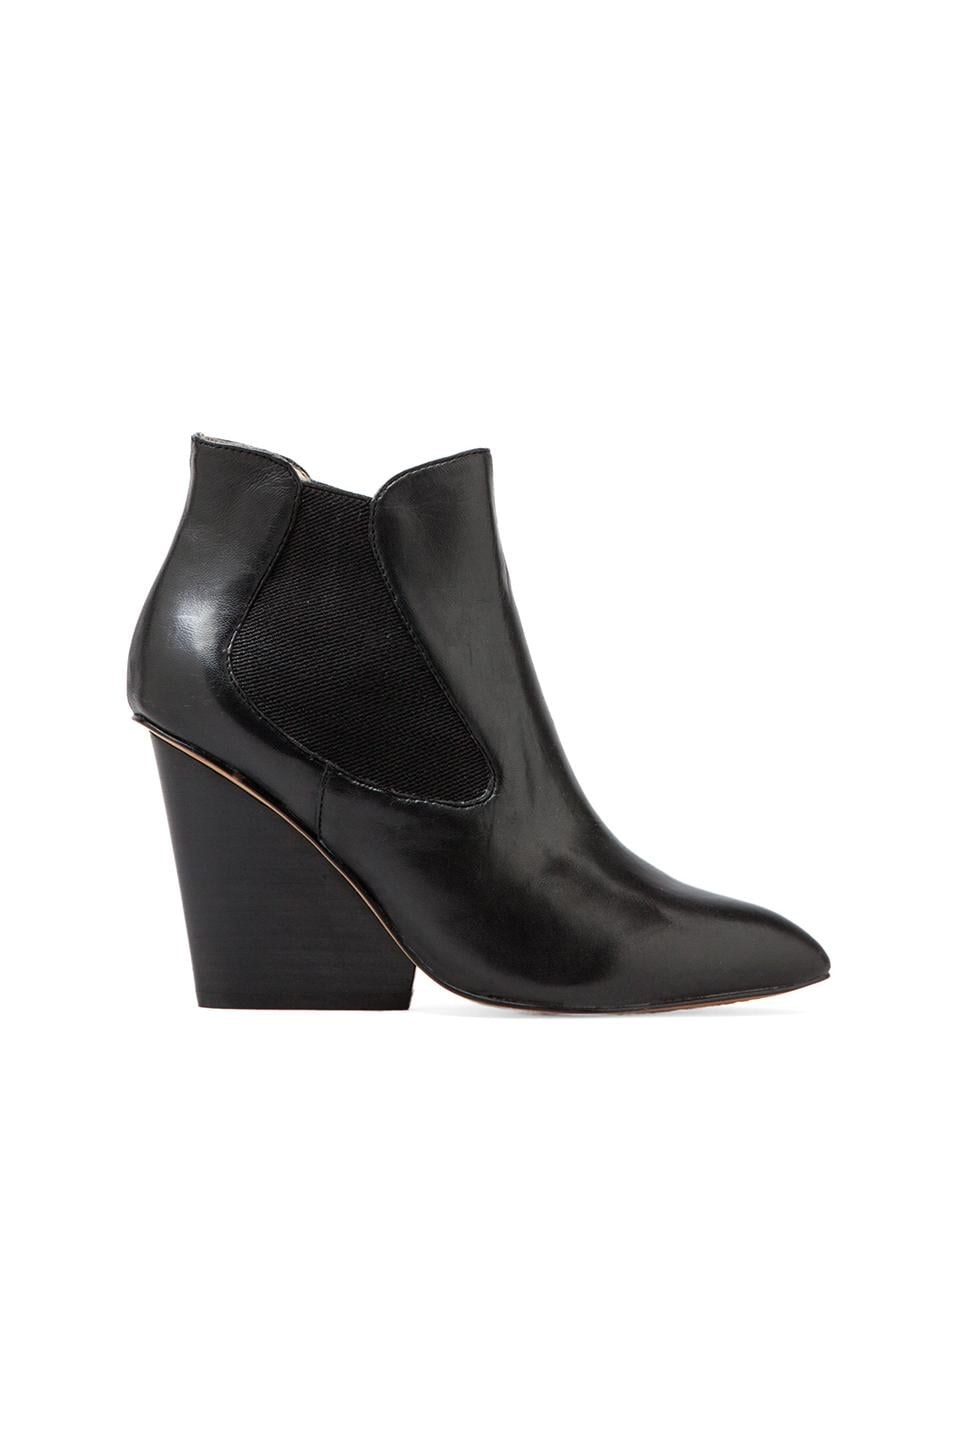 Steven Malik Bootie in Black